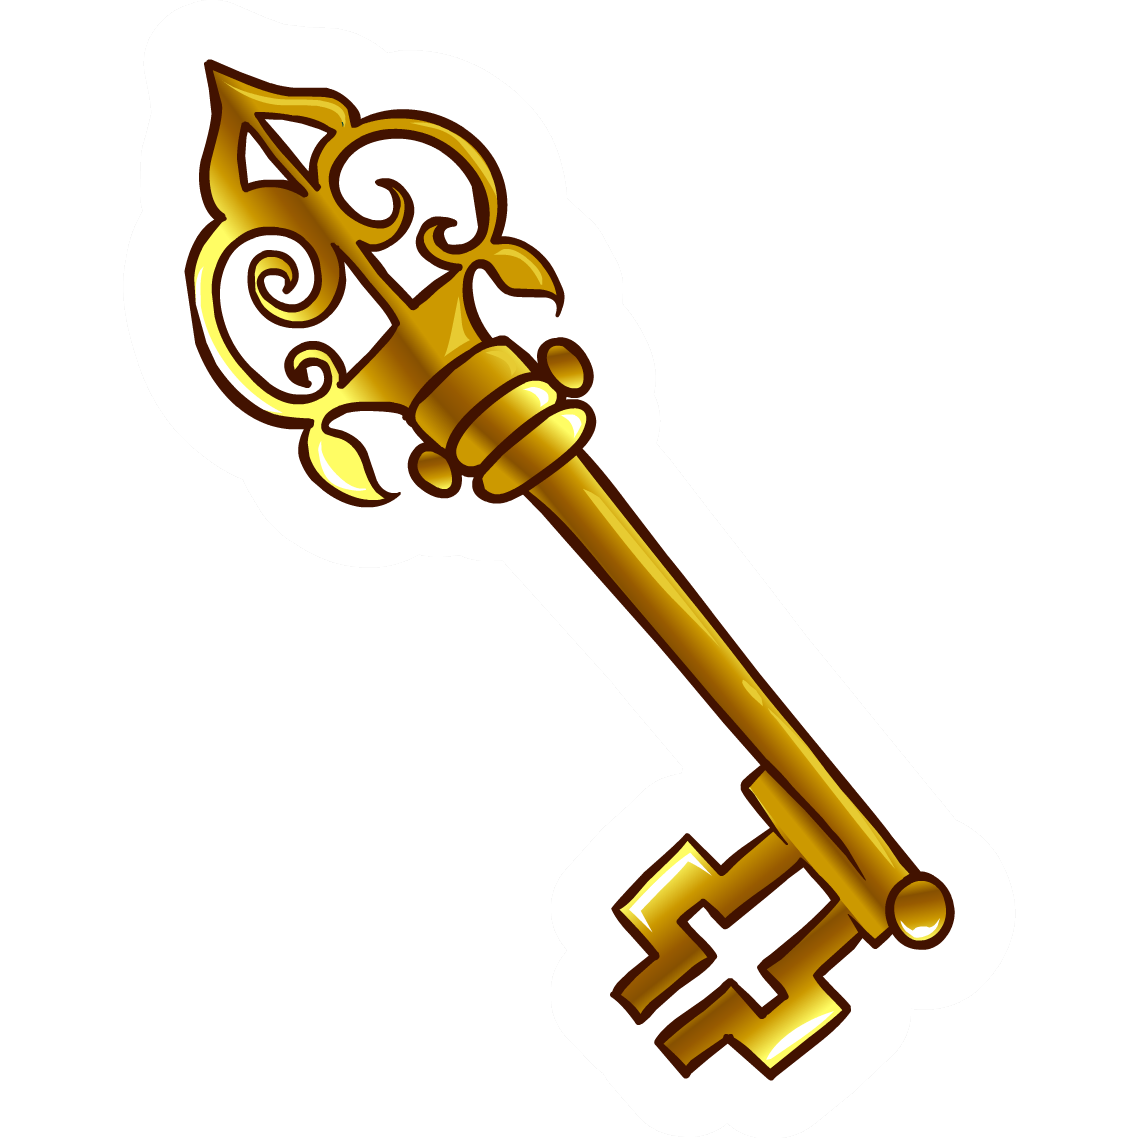 Skeleton keys png file. Image old key pin